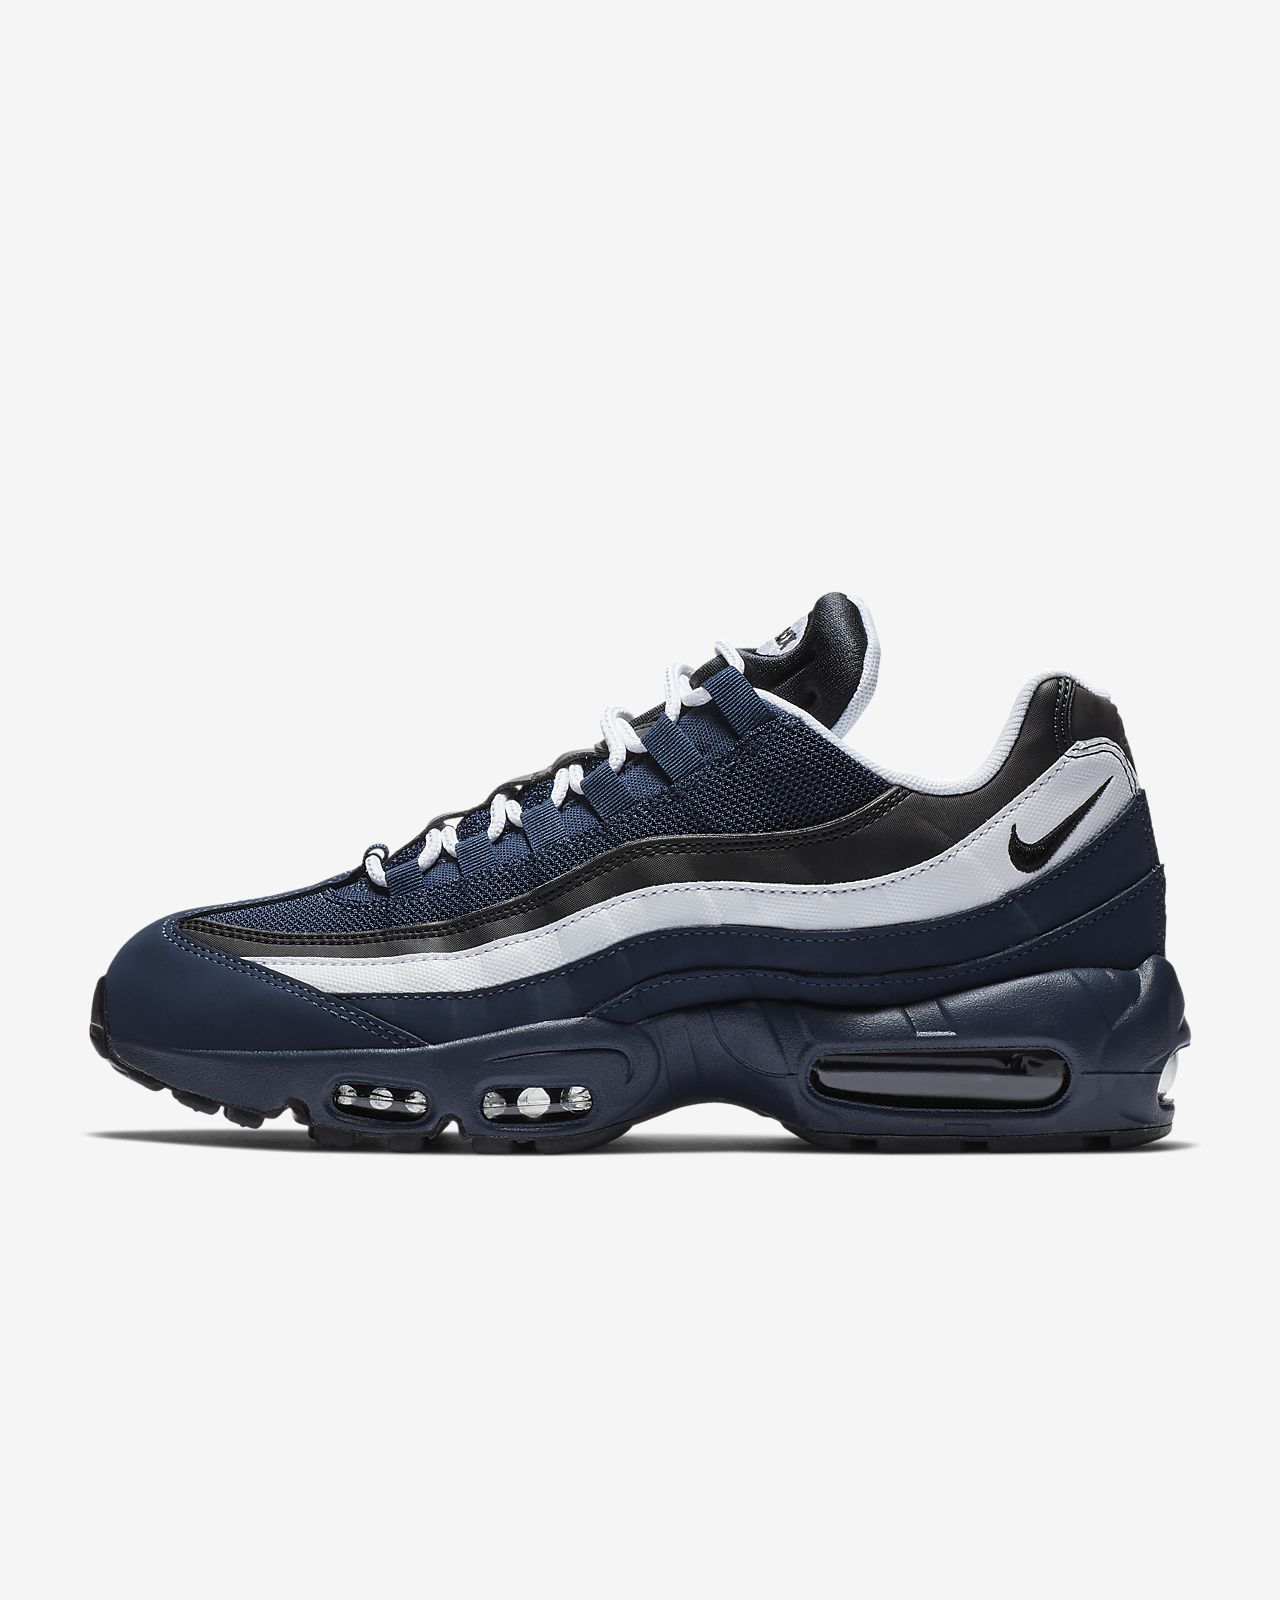 wholesale dealer b293e d3021 ... Chaussure Nike Air Max 95 Essential pour Homme